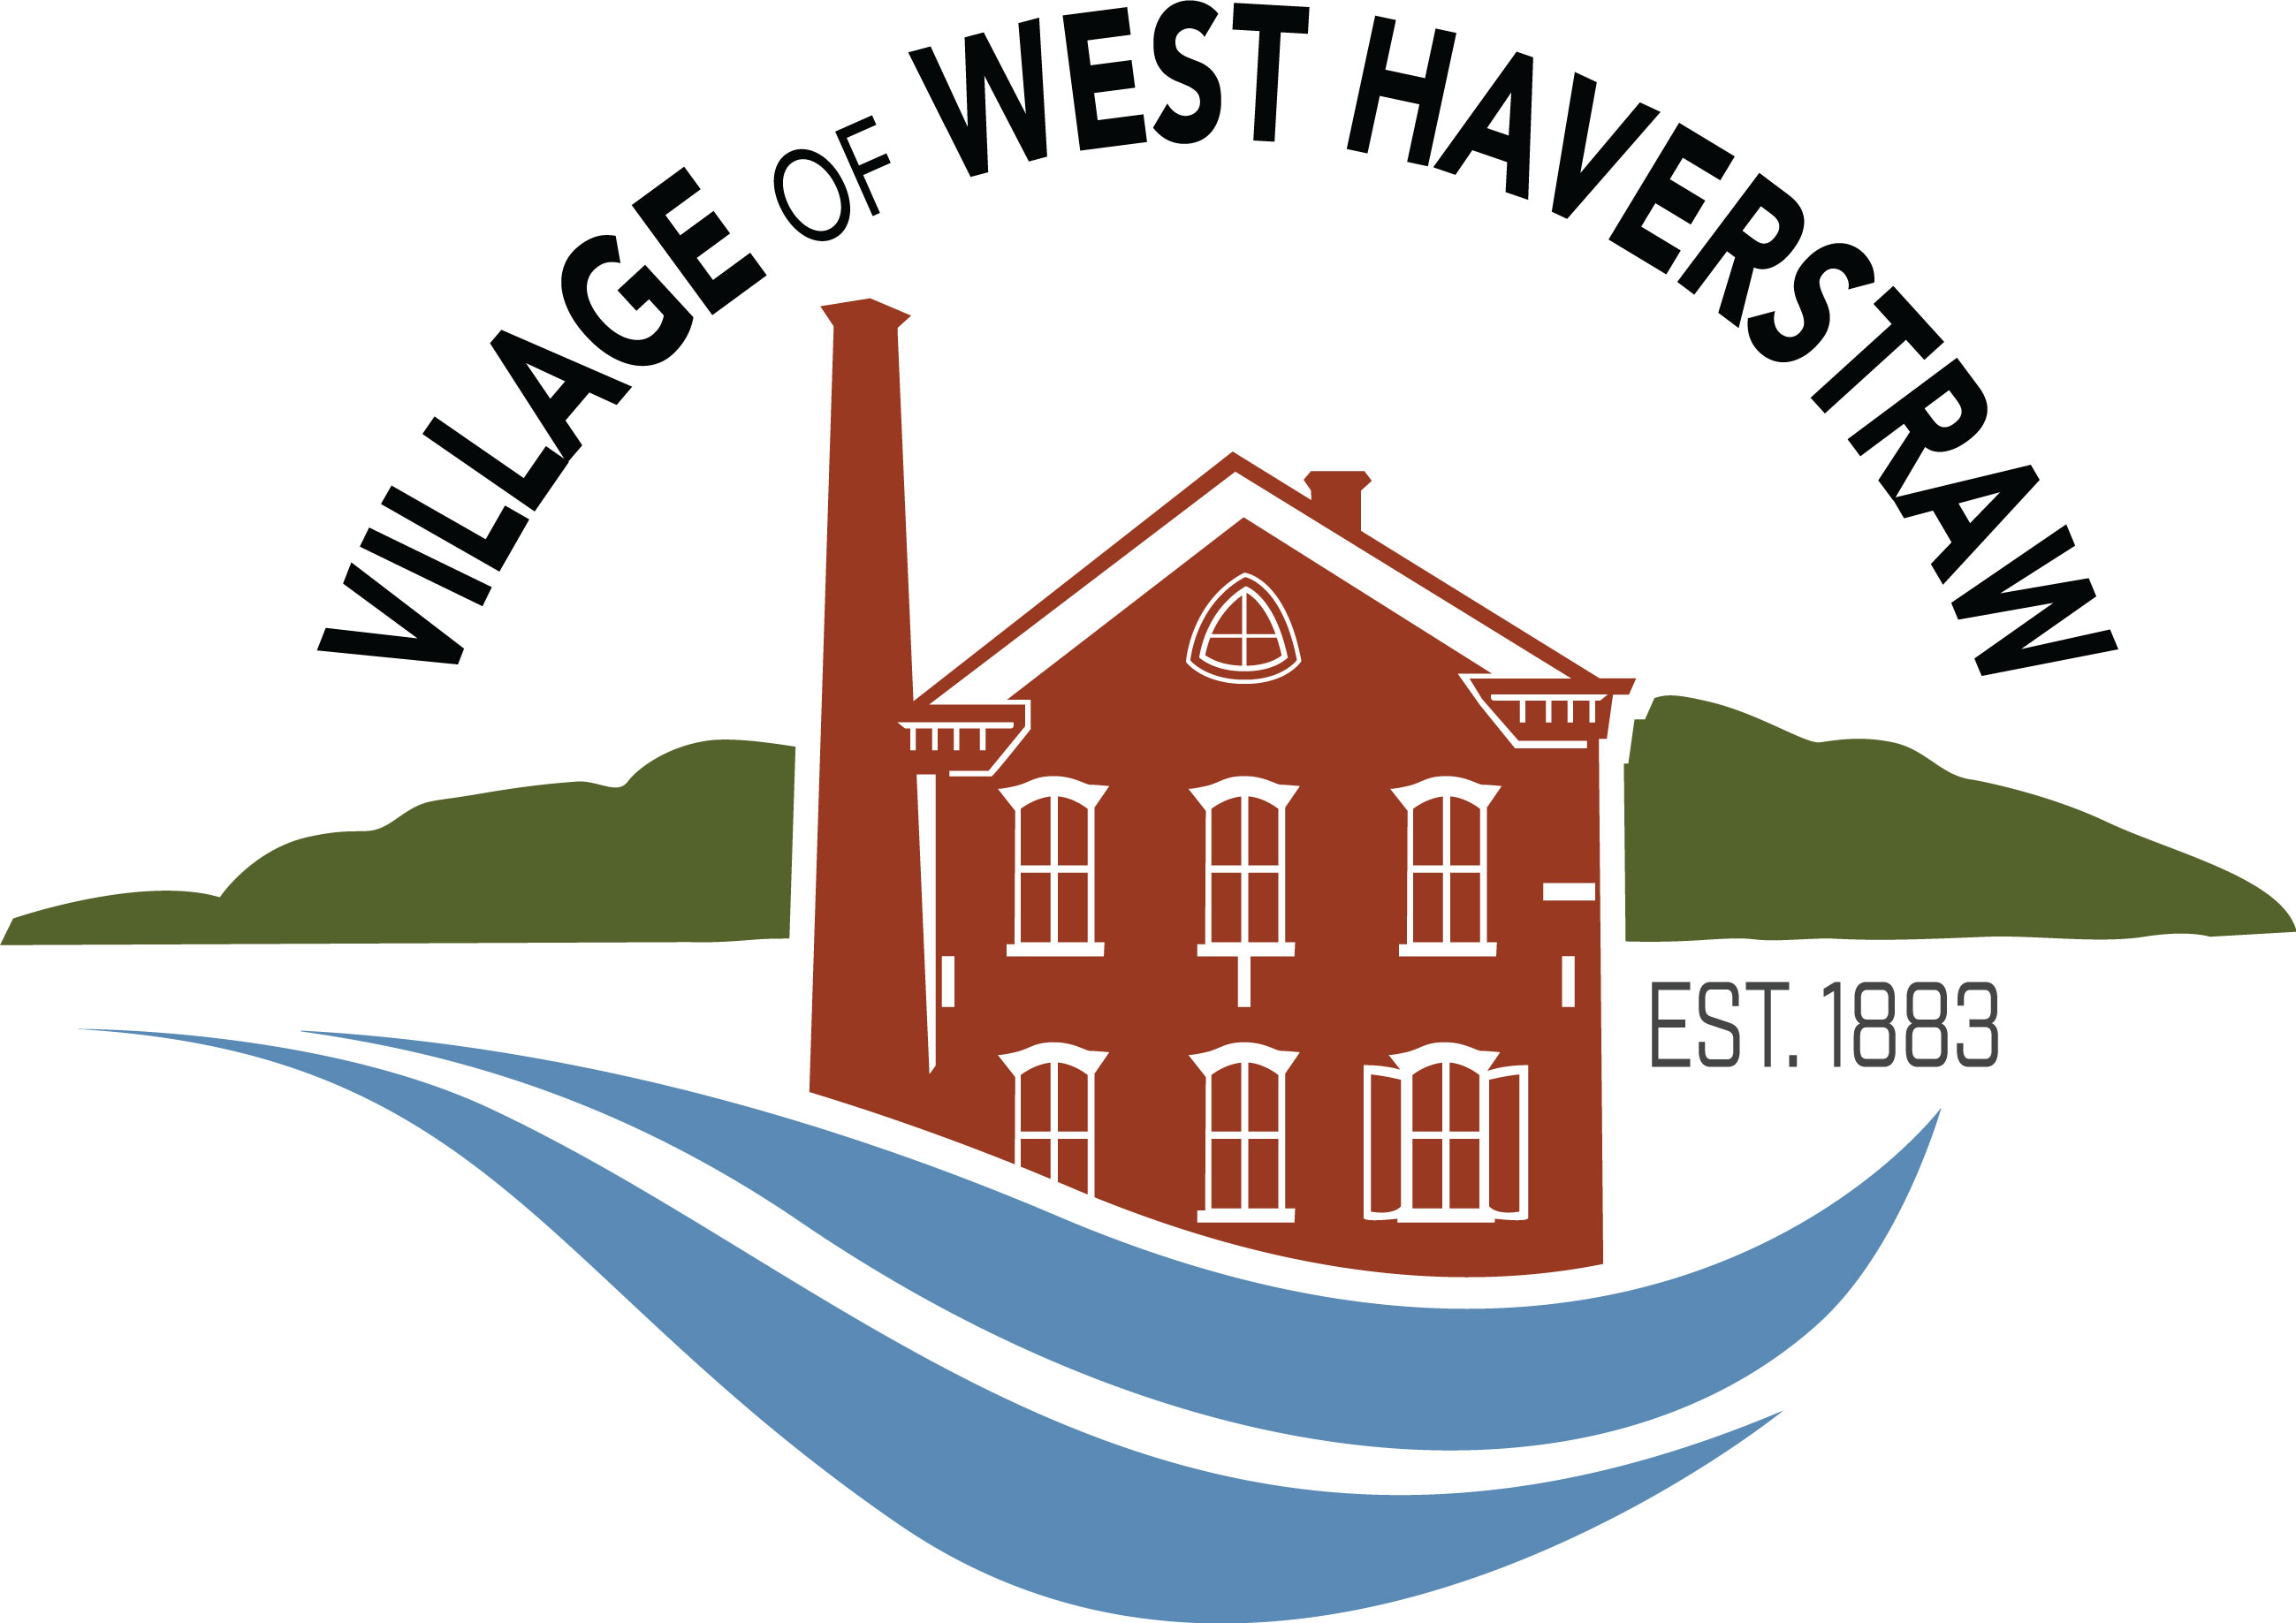 Organization logo of Village of West Haverstraw